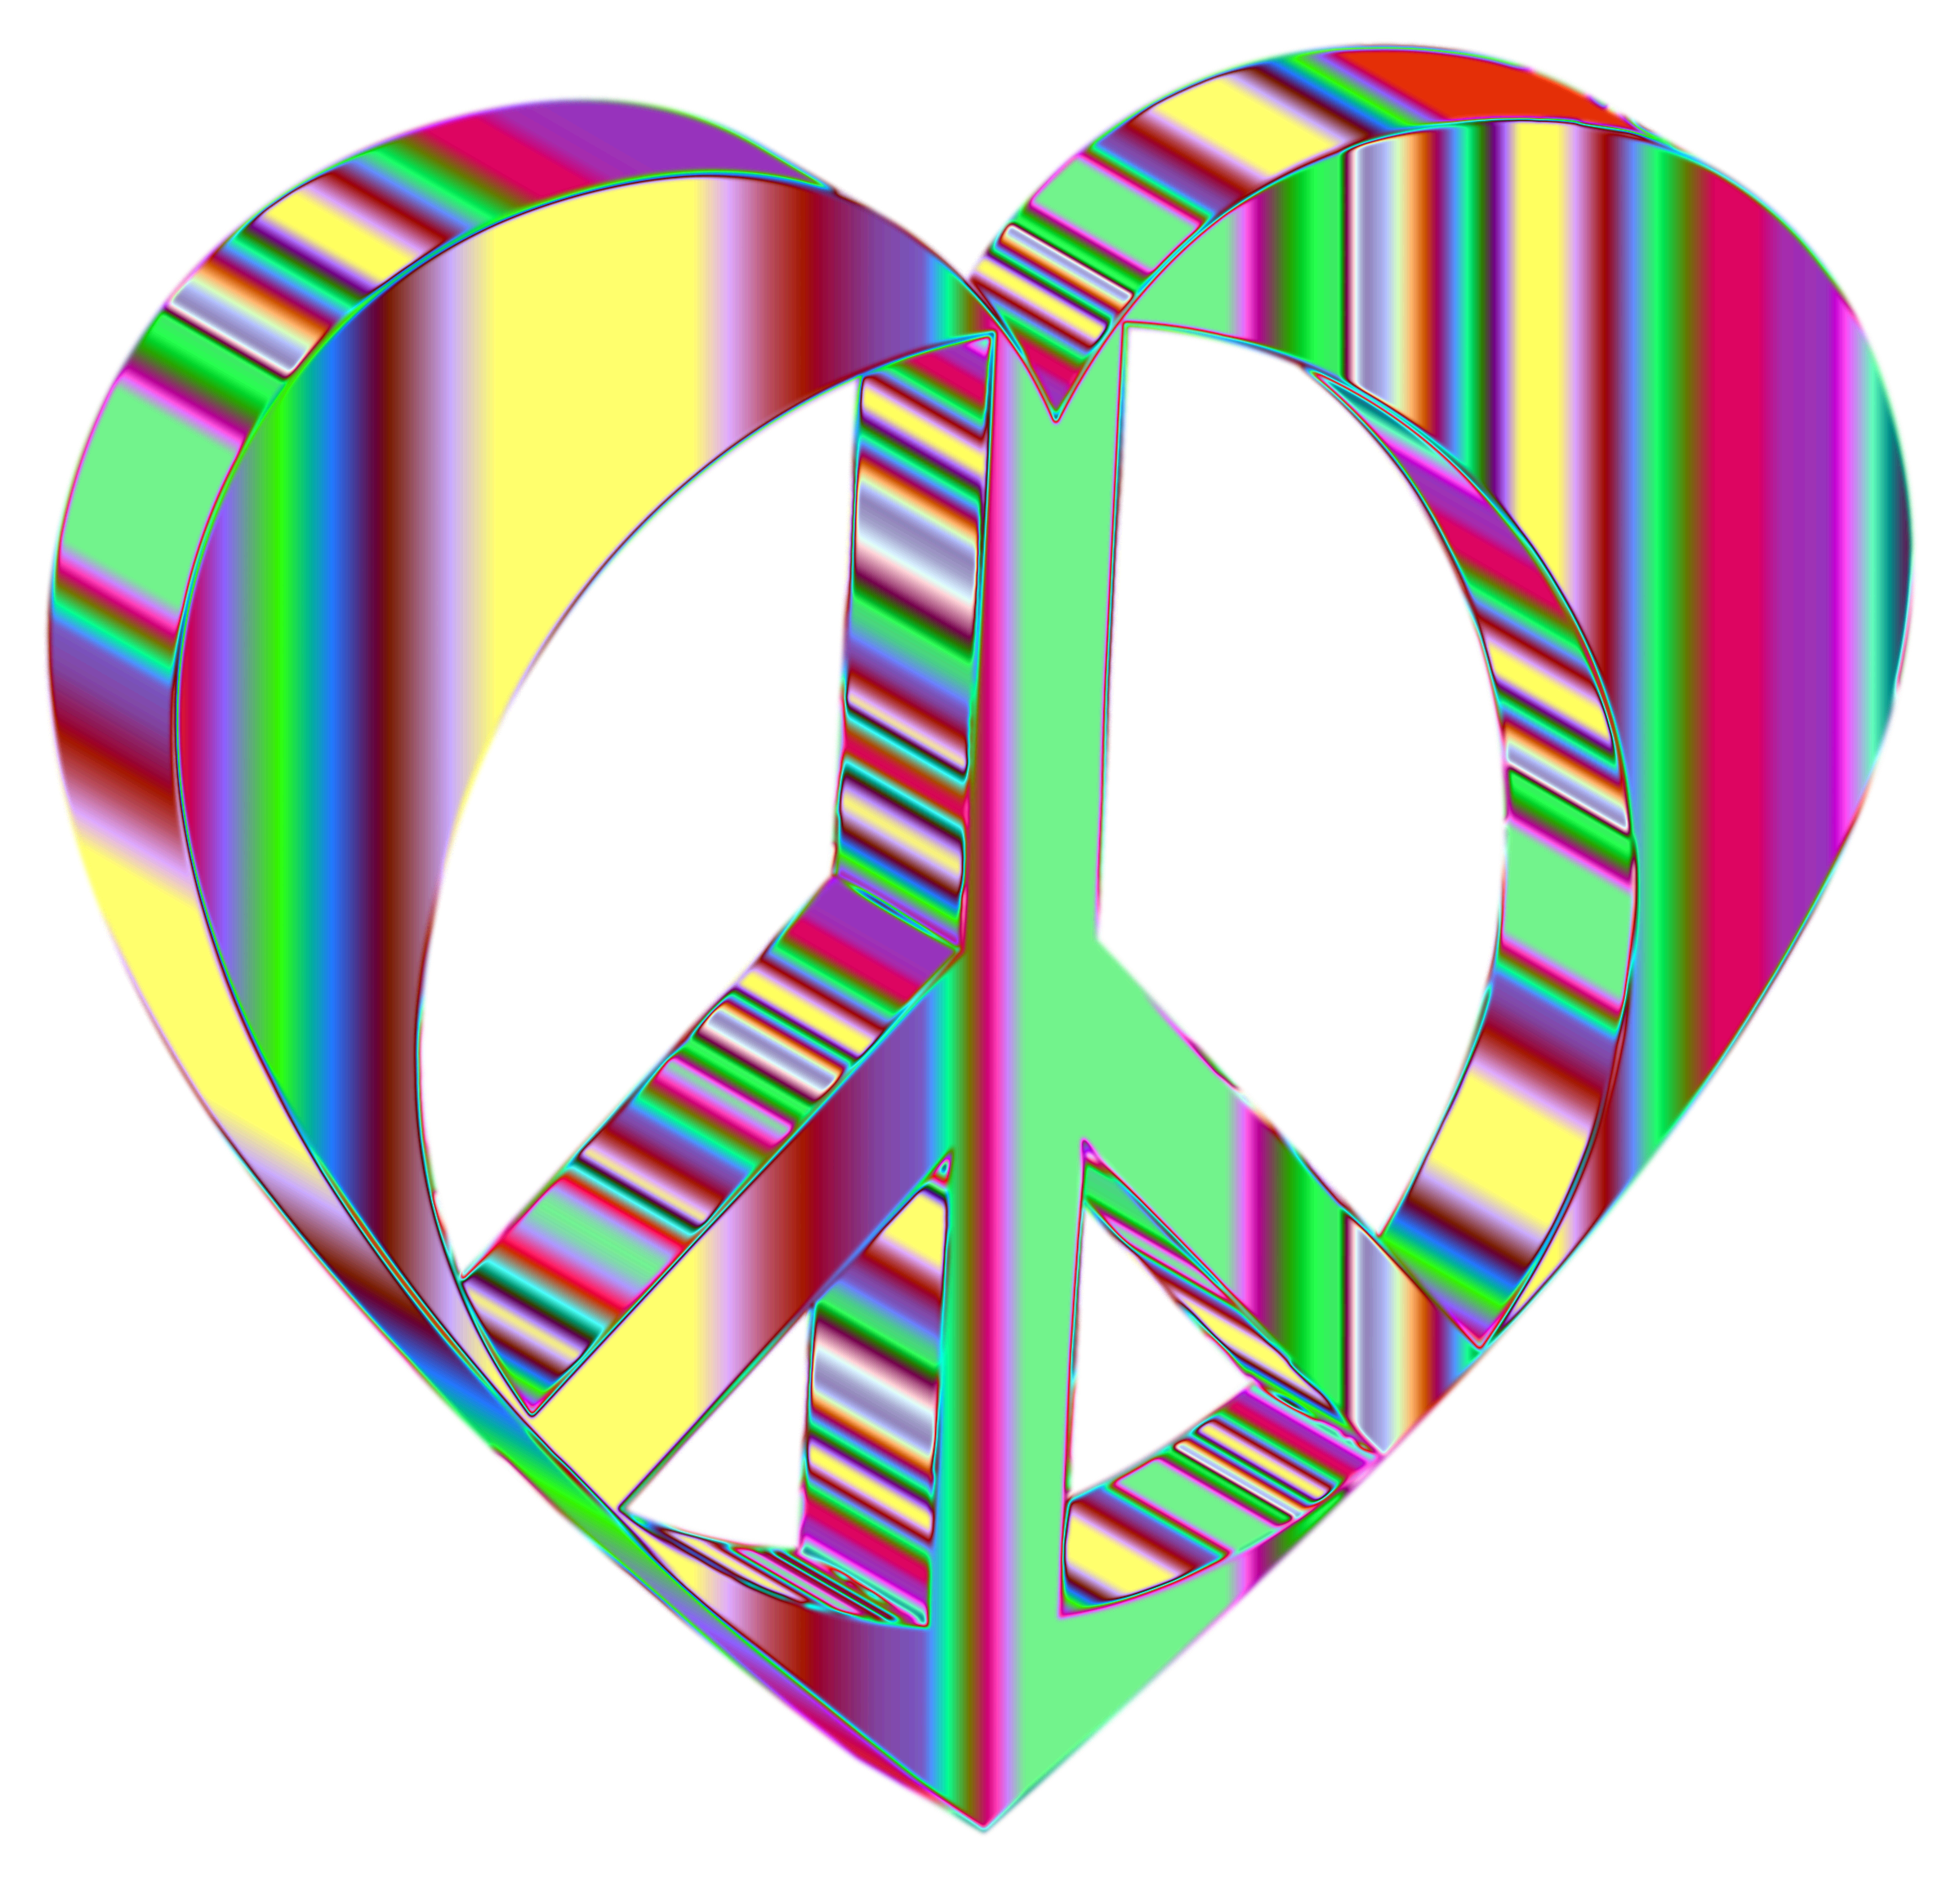 3D Peace Heart Mark II Psychedelic No Background by GDJ